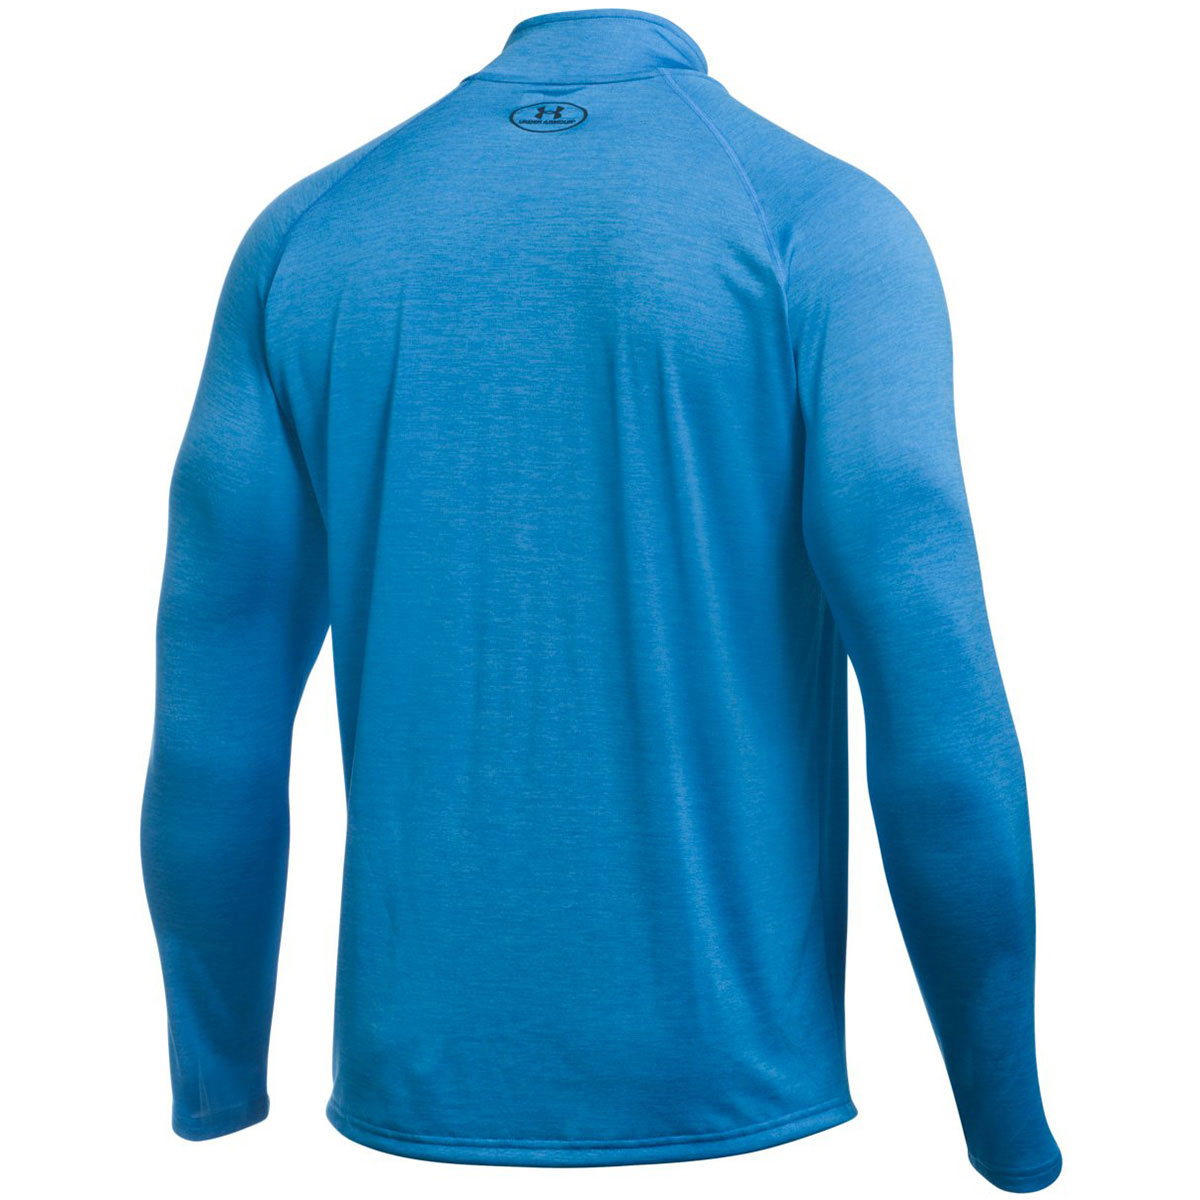 The Best Running Shirt Review for Men. By Andy Wellman ⋅ Senior Review Editor. Friday April 13, In truth, this shirt is designed for any sort of workout activity and is not marketed as, or limited to, usage simply while running. The Best Long Underwear and Base Layer for Men Long underwear options are seemingly overflowing from.